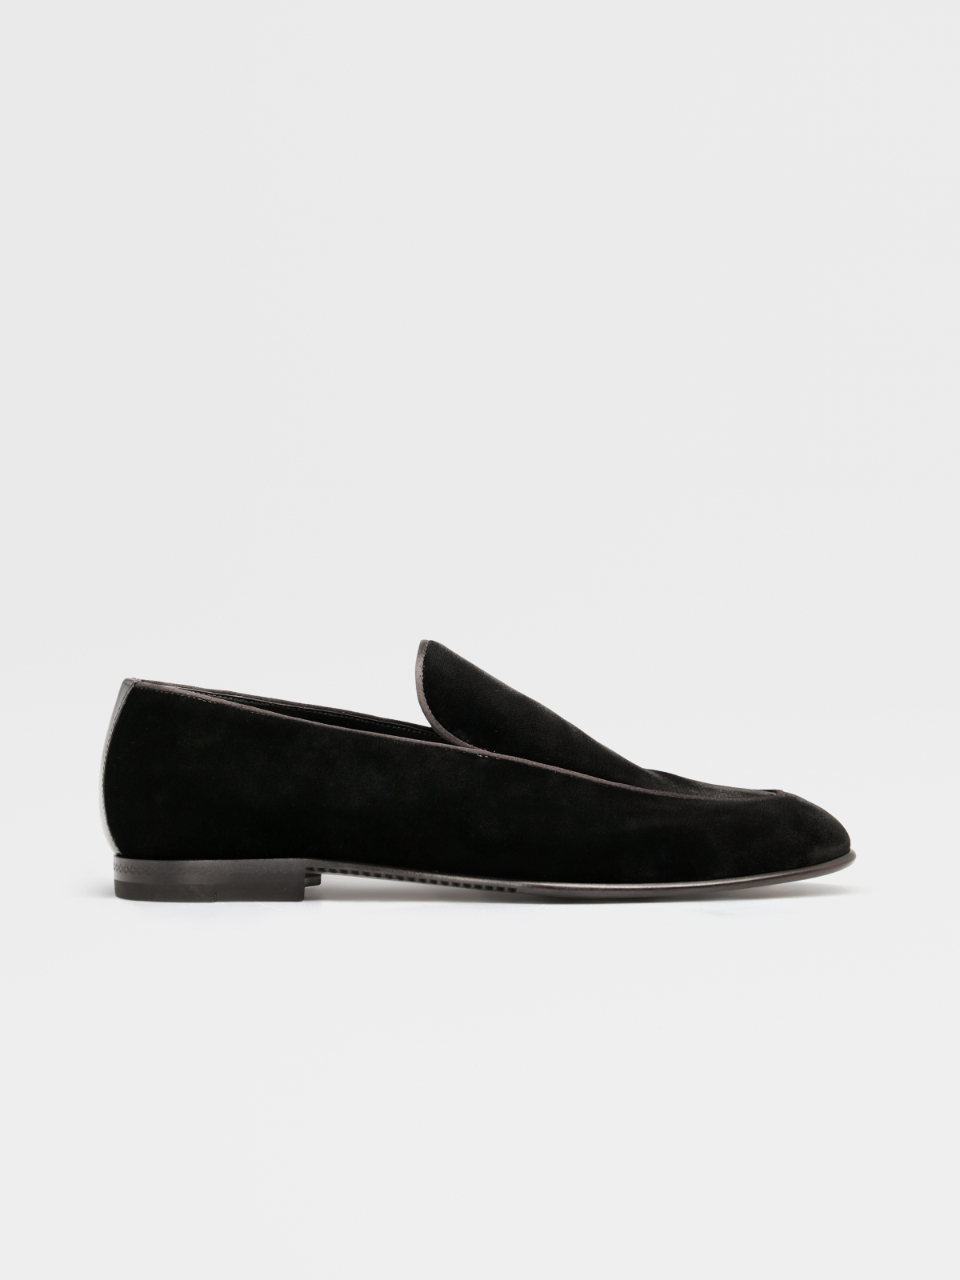 Velvet Lido Smoking Slippers